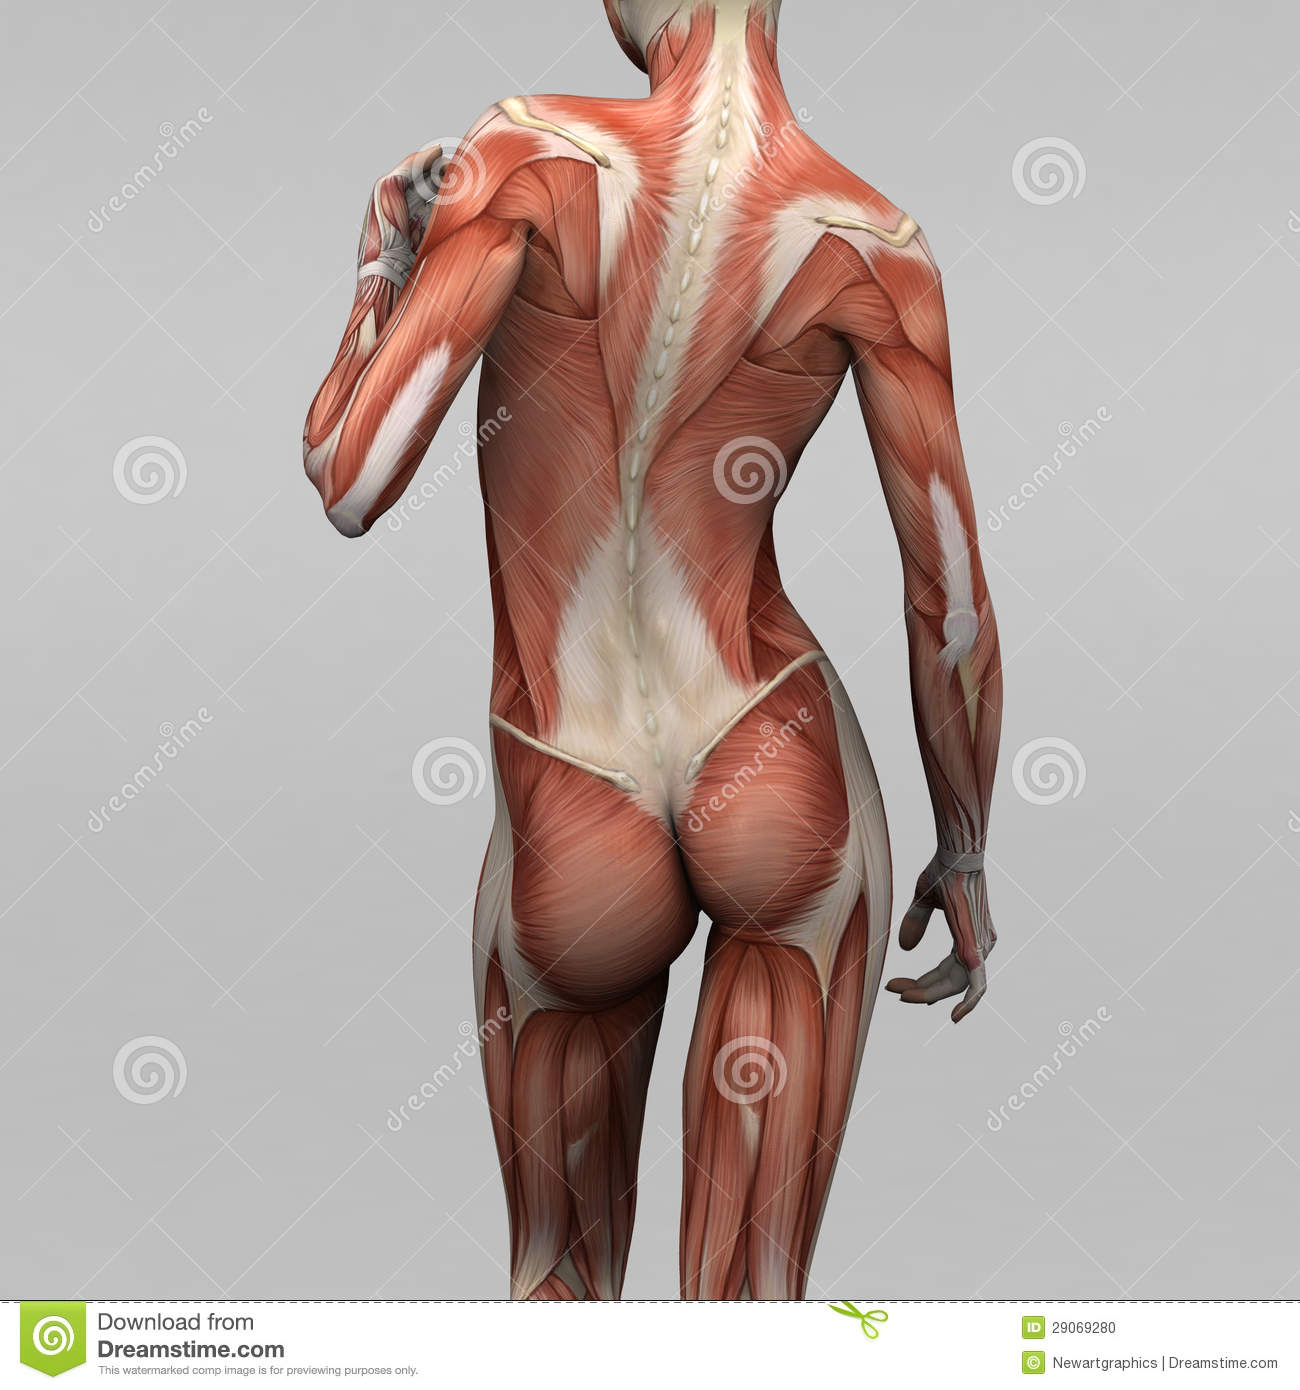 Female Human Anatomy And Muscles Stock Illustration